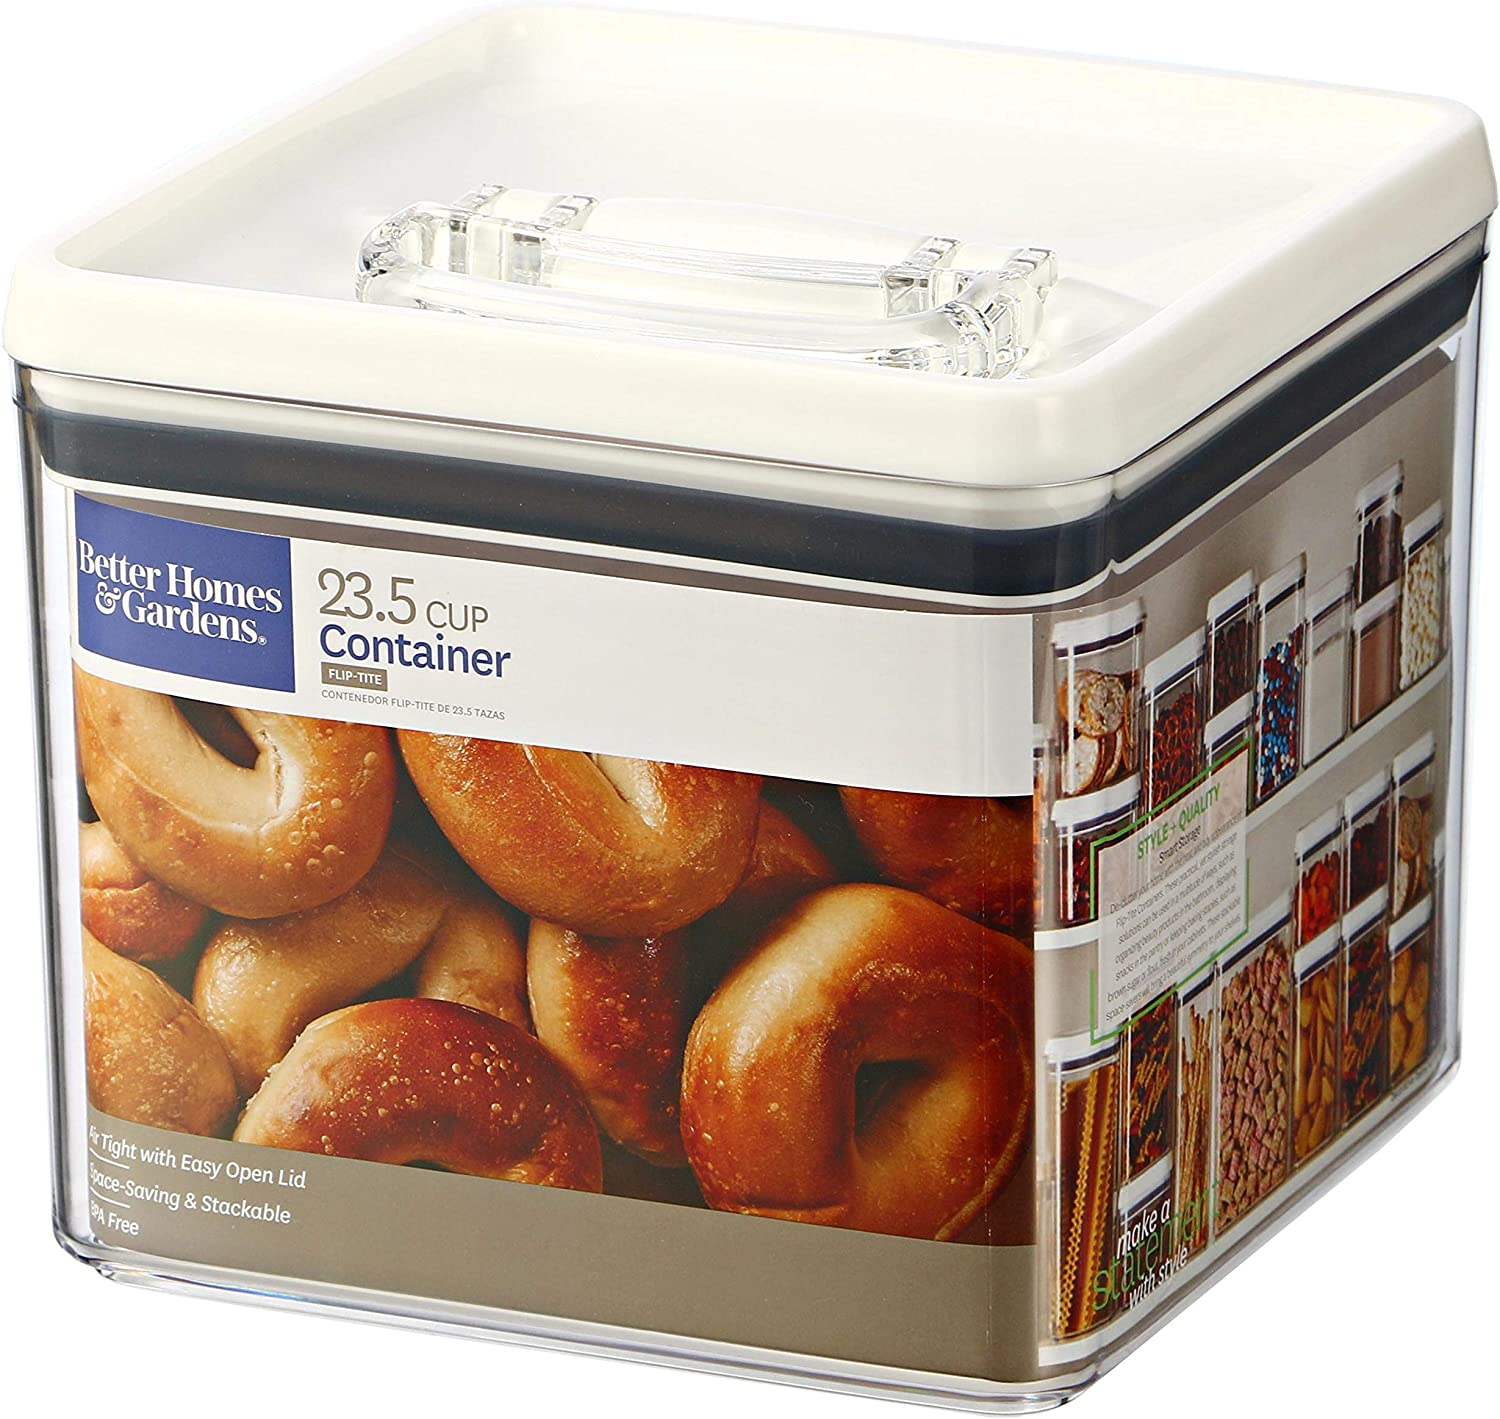 Better Home & Gardens 23.5 cup Container